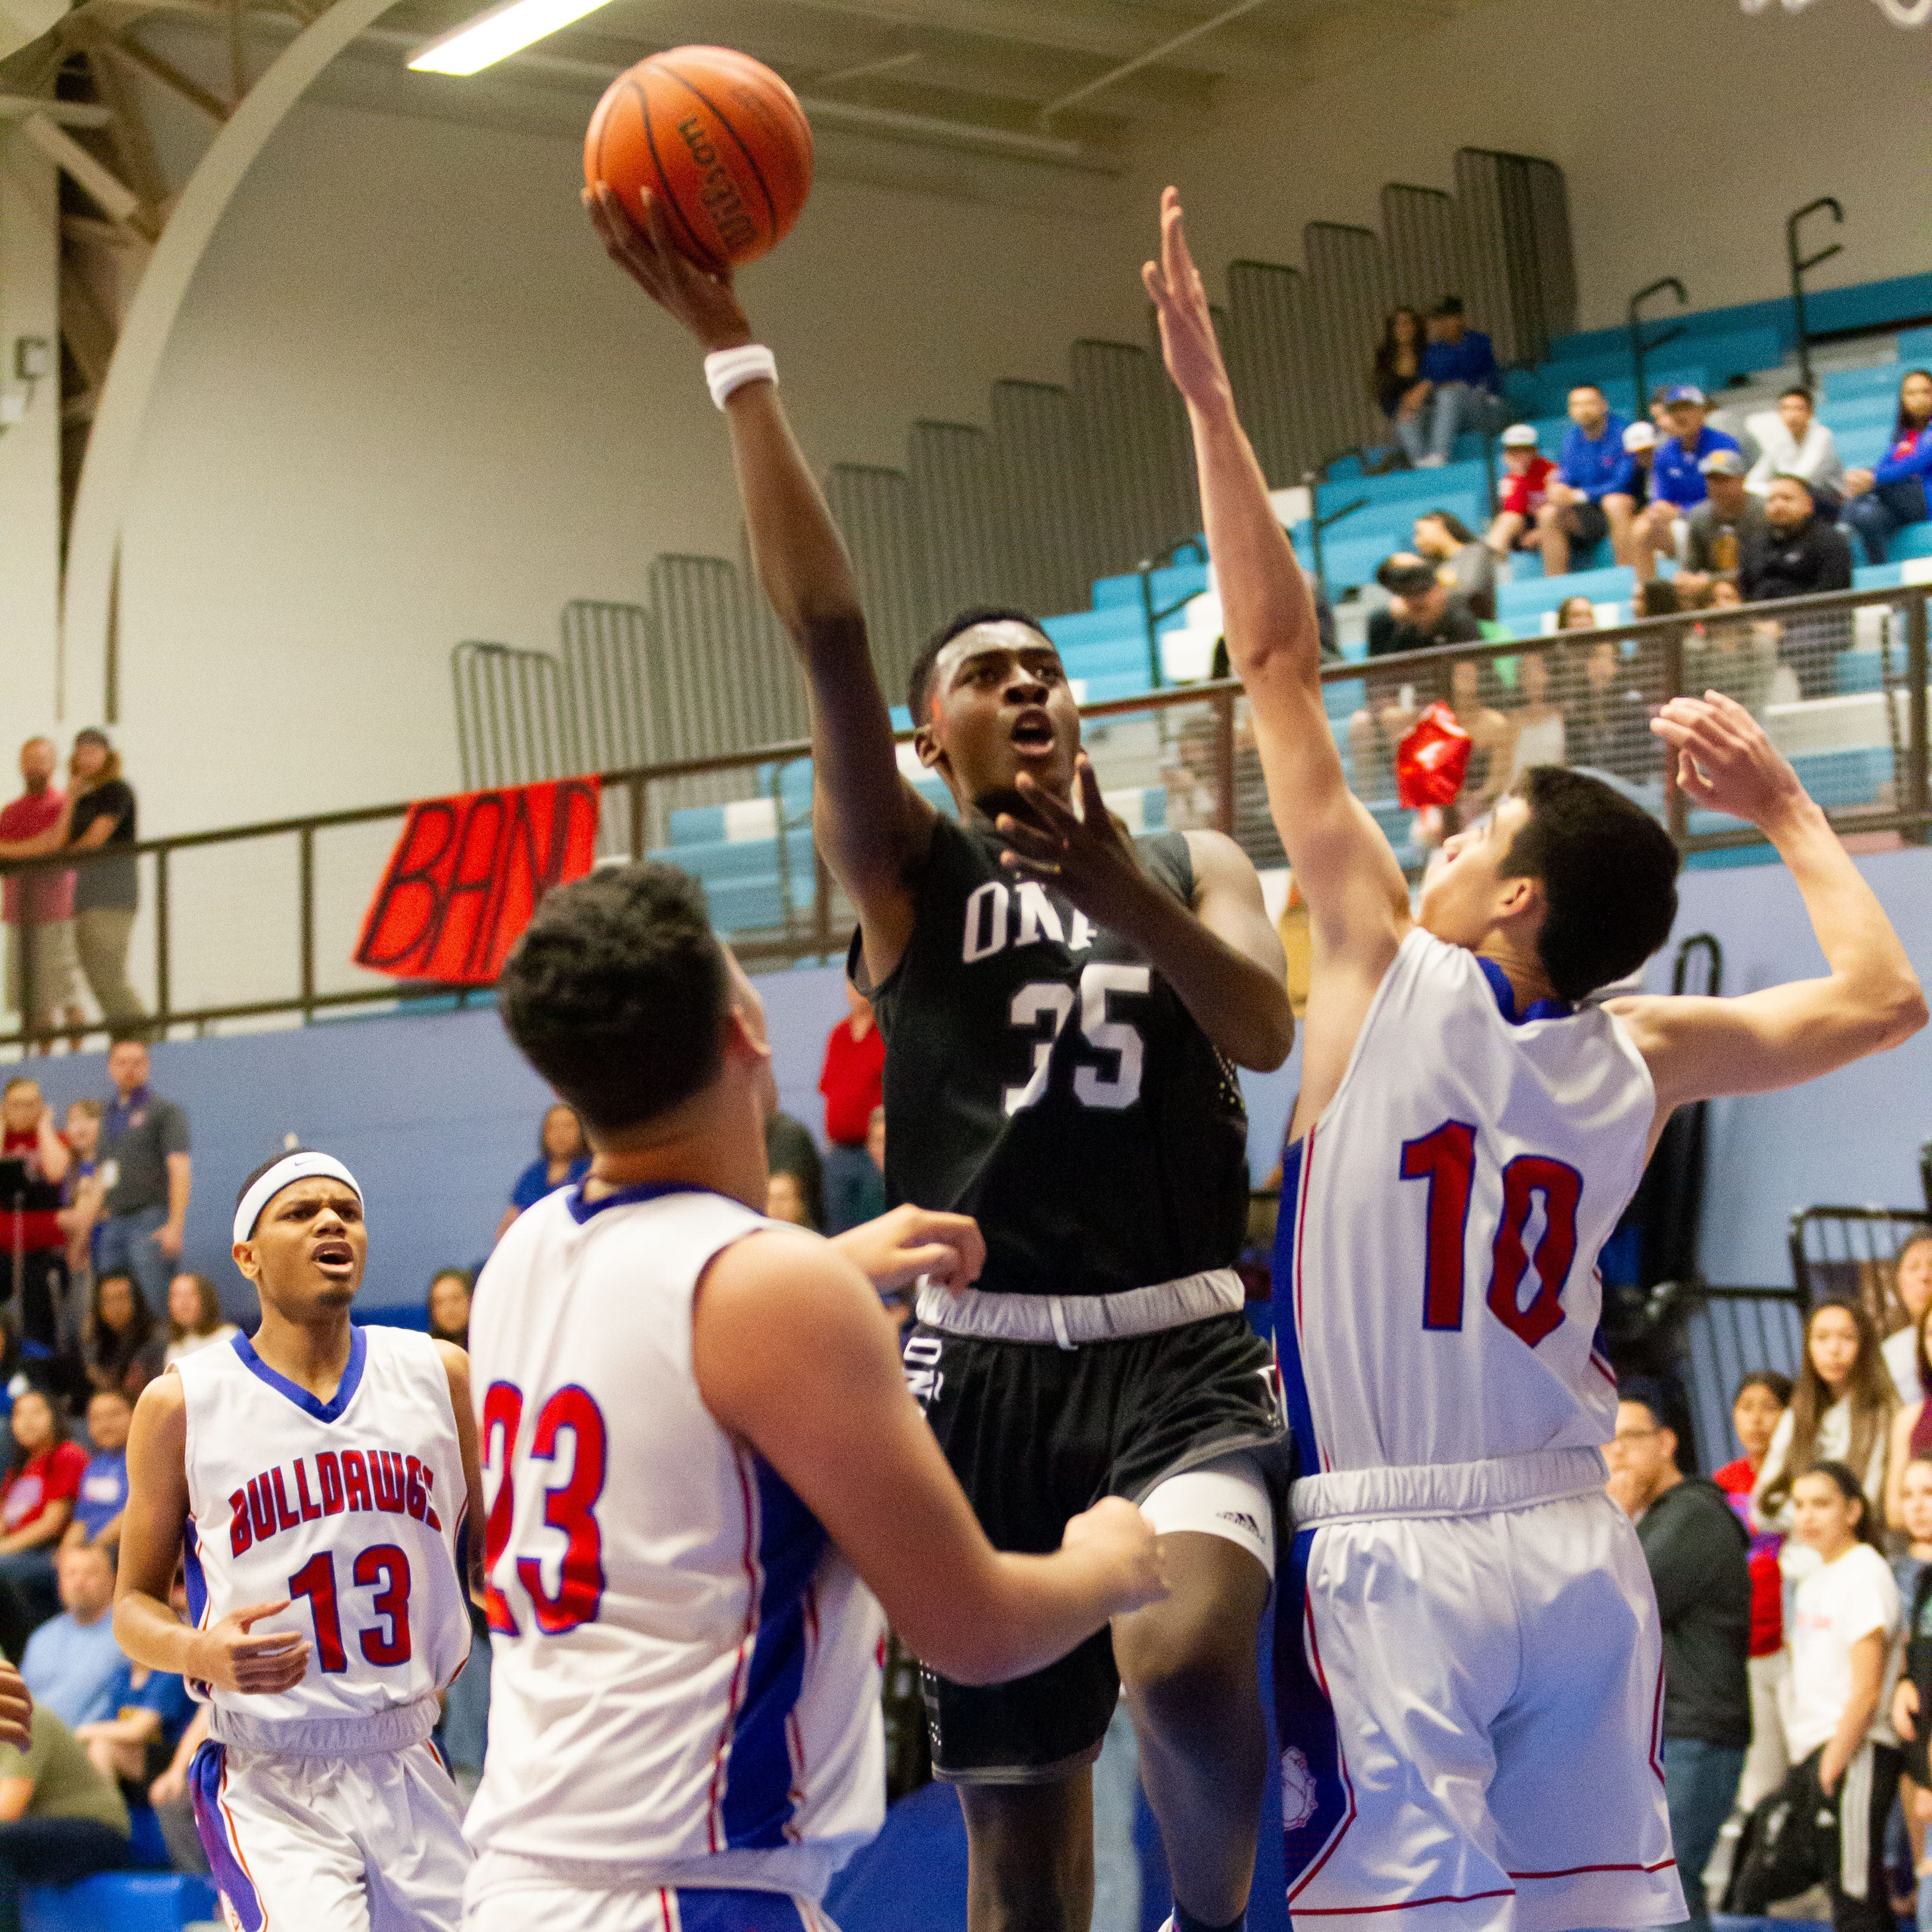 Three local storylines for Round 1 of state tourney